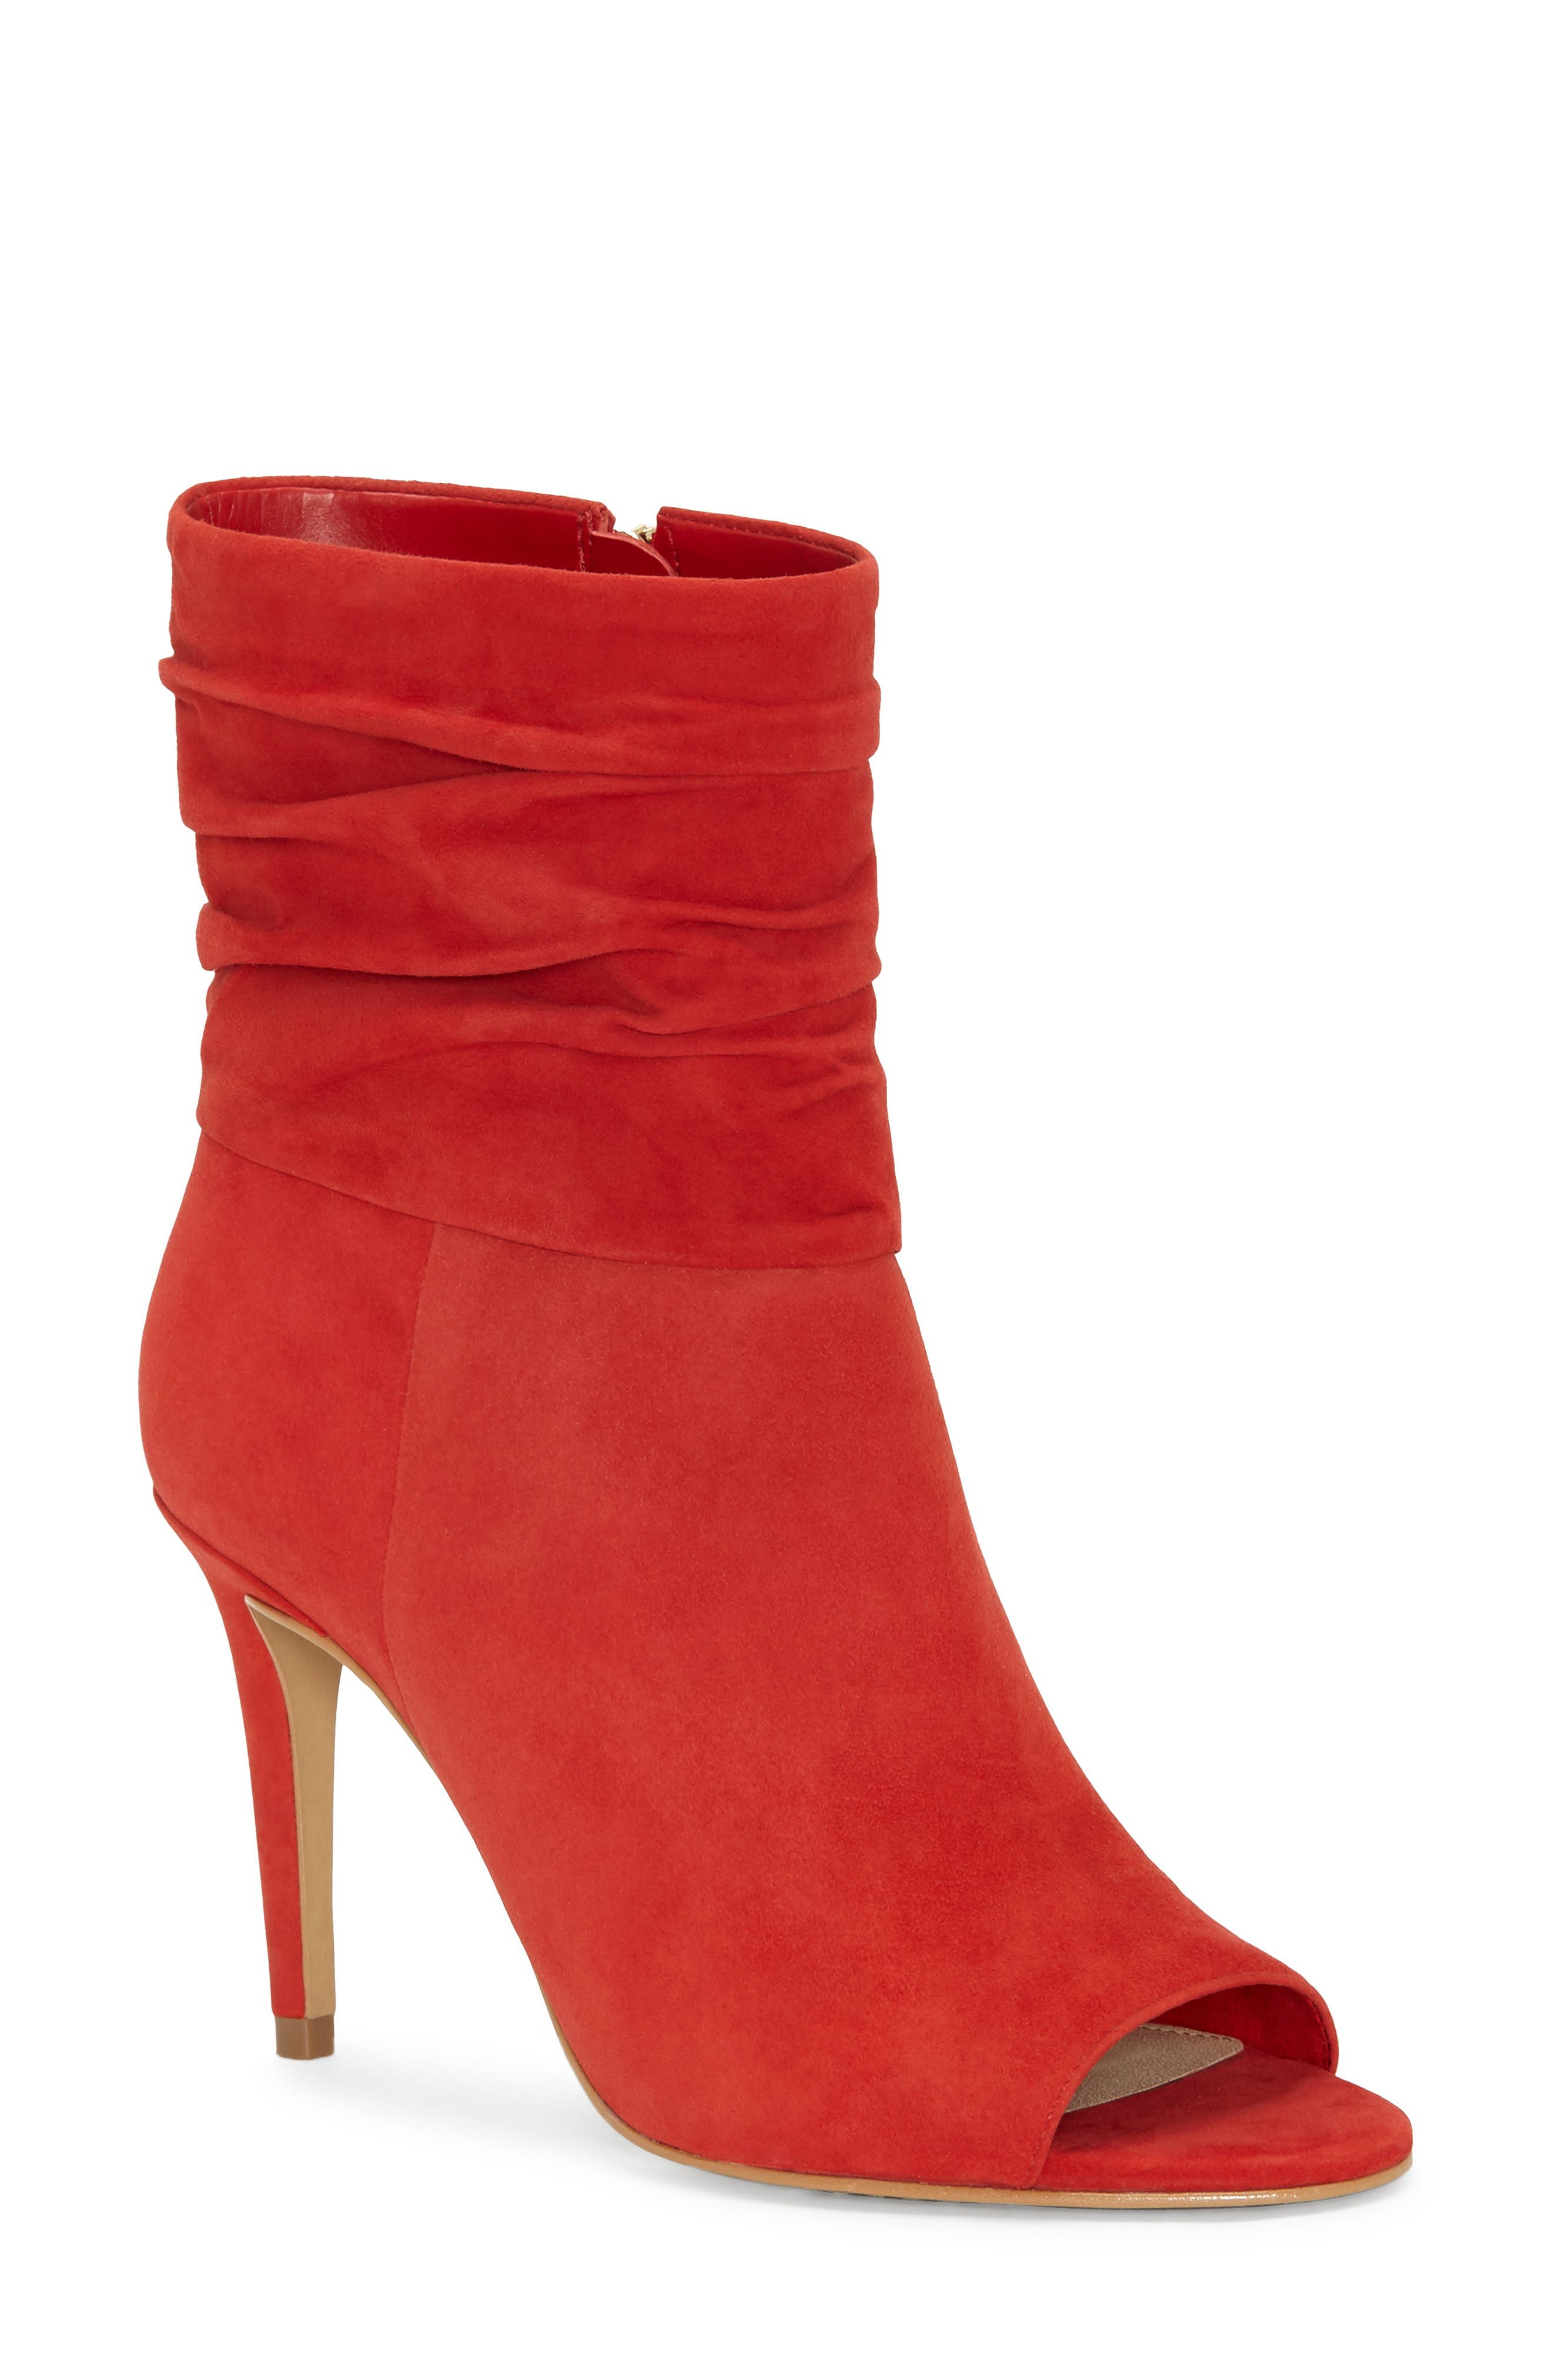 Vince Camuto Catillia Open Toe Bootie, Red